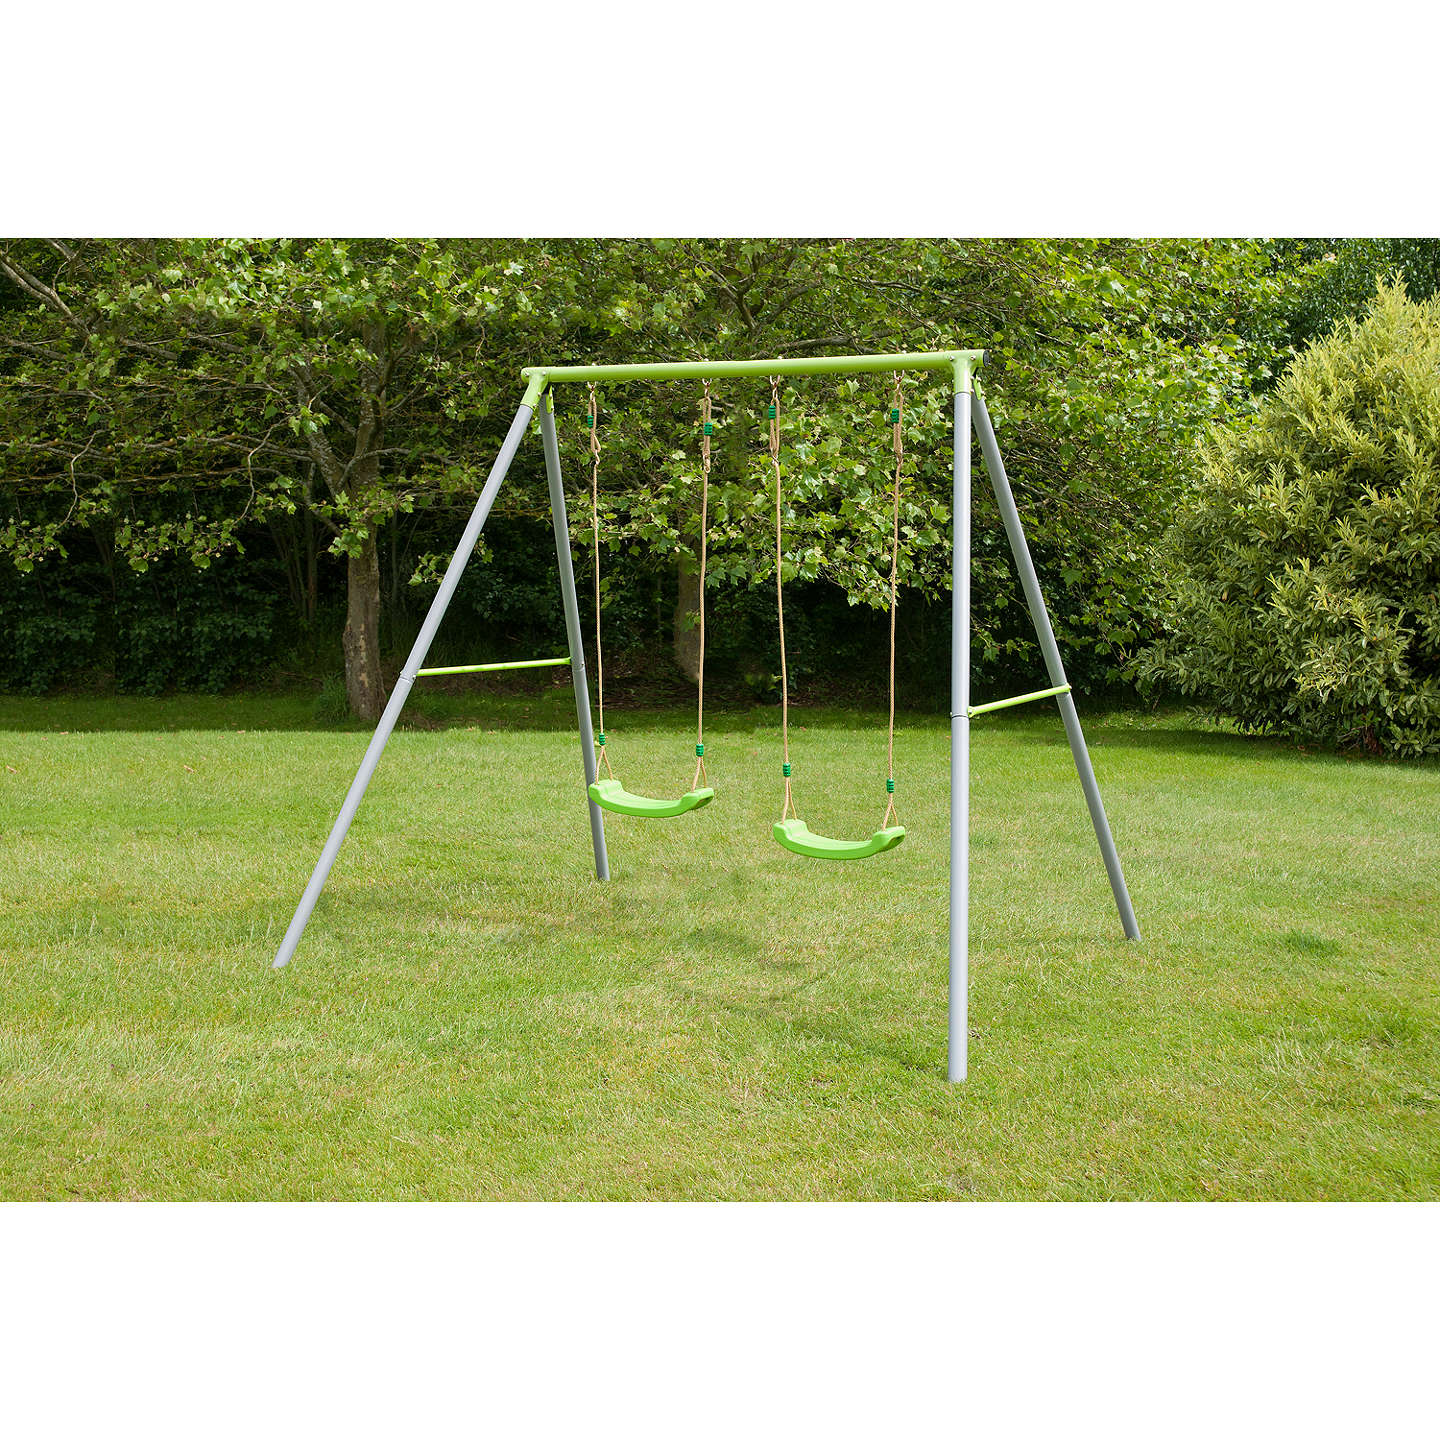 TP Toys TP522 Double Metal Swing Set at John Lewis